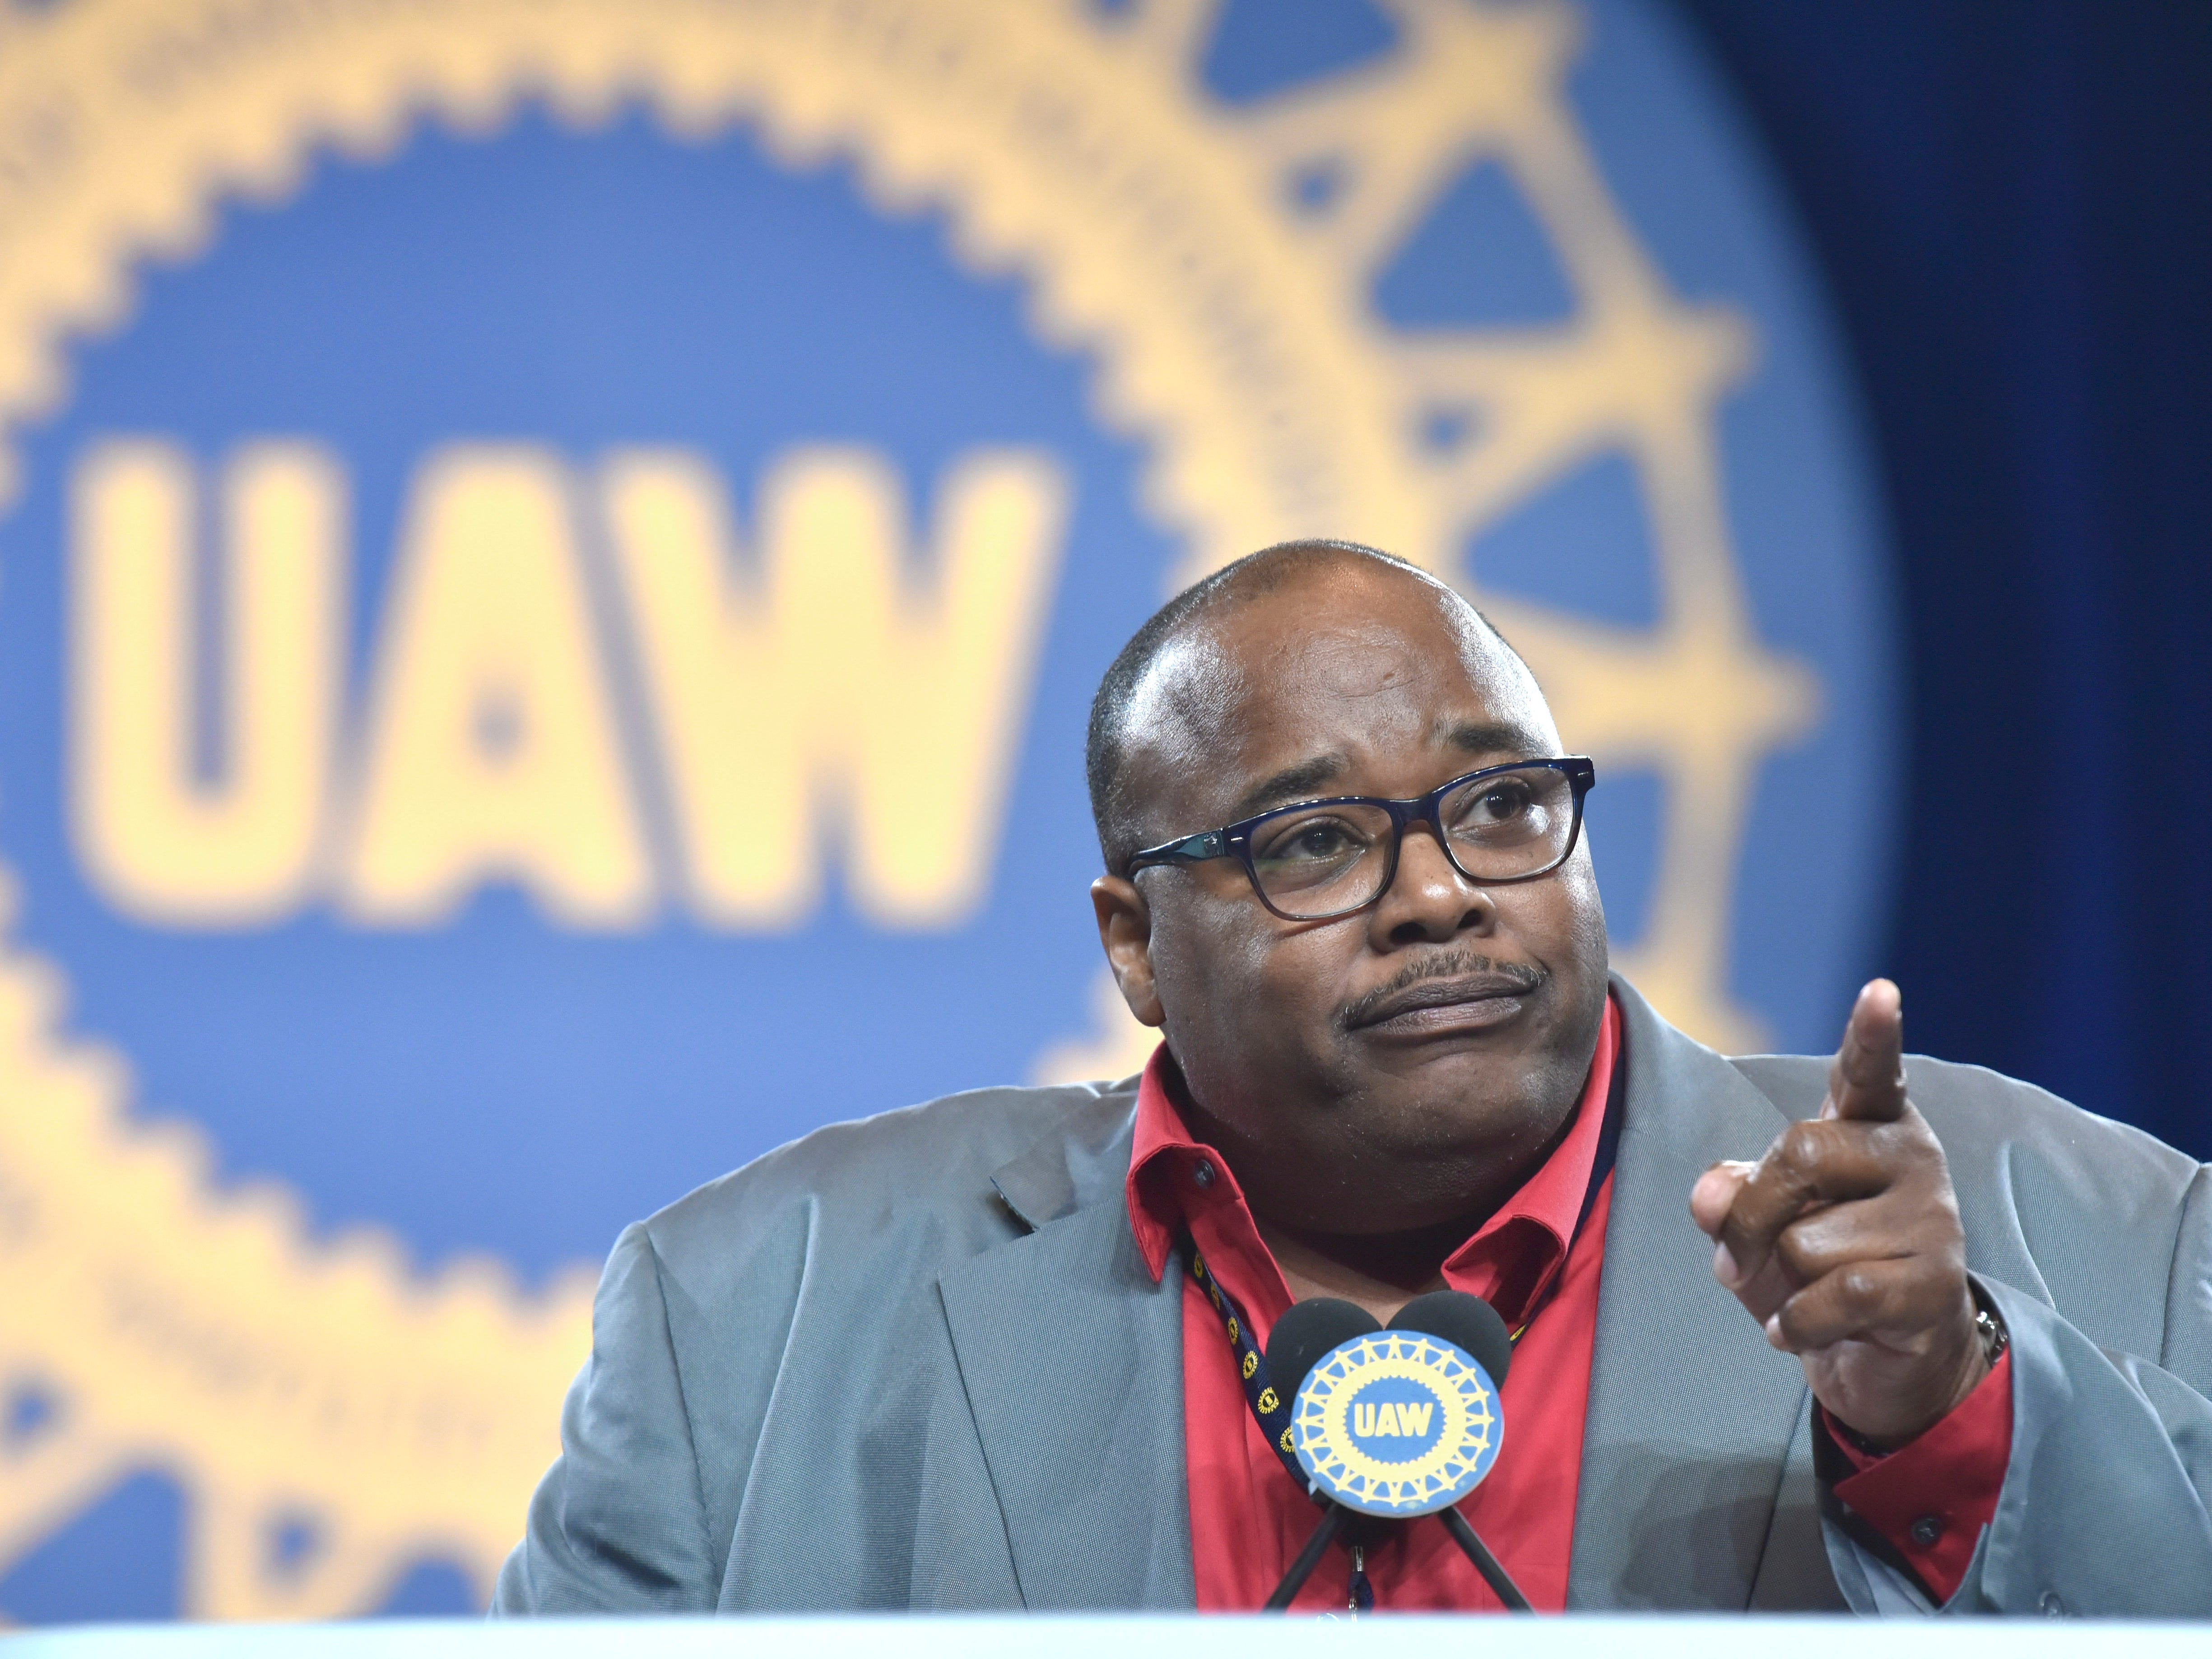 VP Rory Gamble gives a sector report / Intro of the UAW Ford National Negotiating Team.